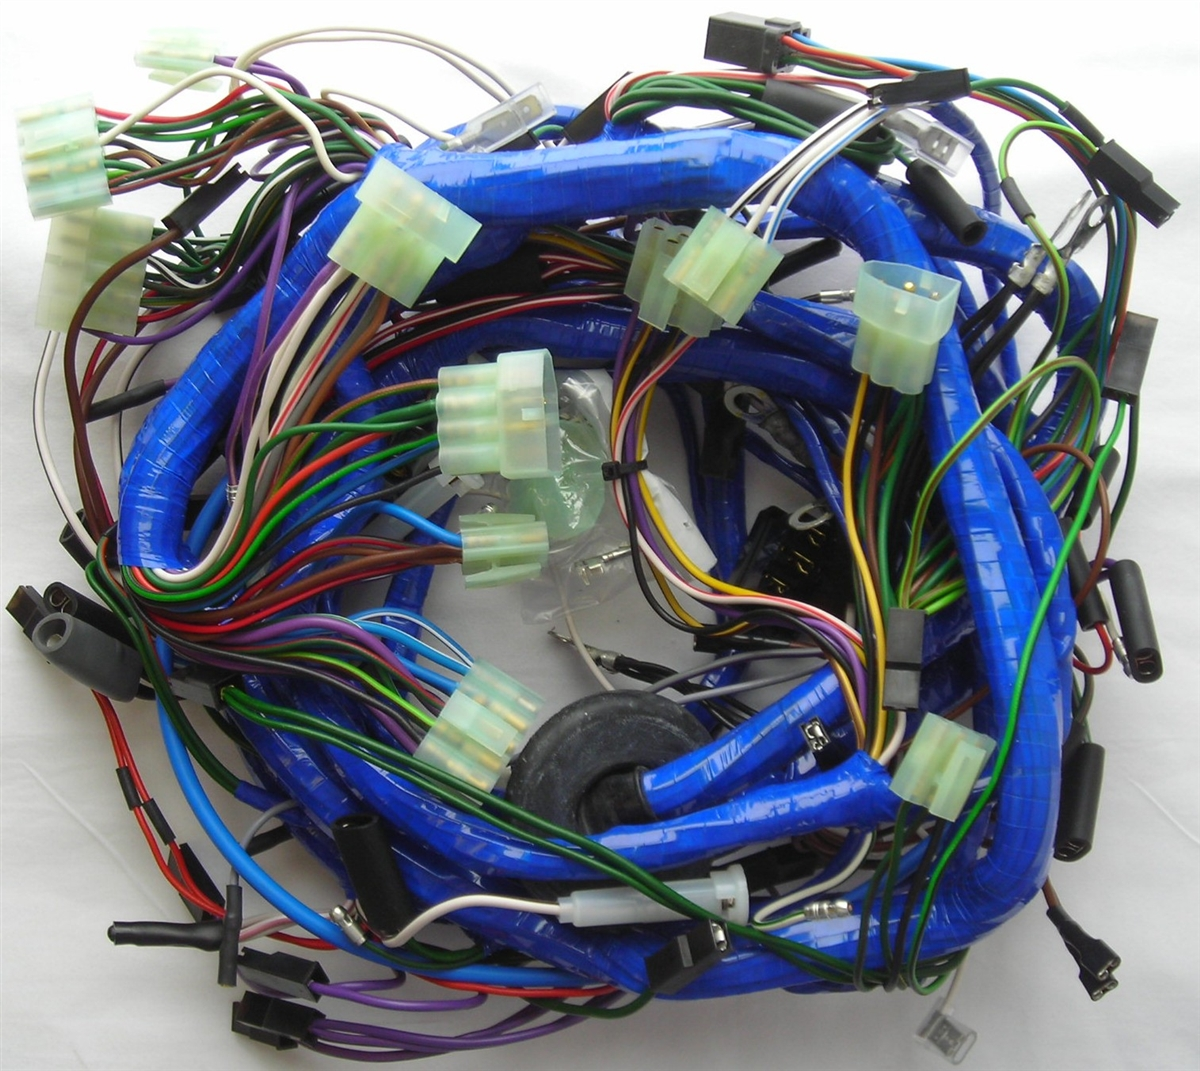 Main Wiring Harness for 1976 - 1978 MGB's.British Wiring